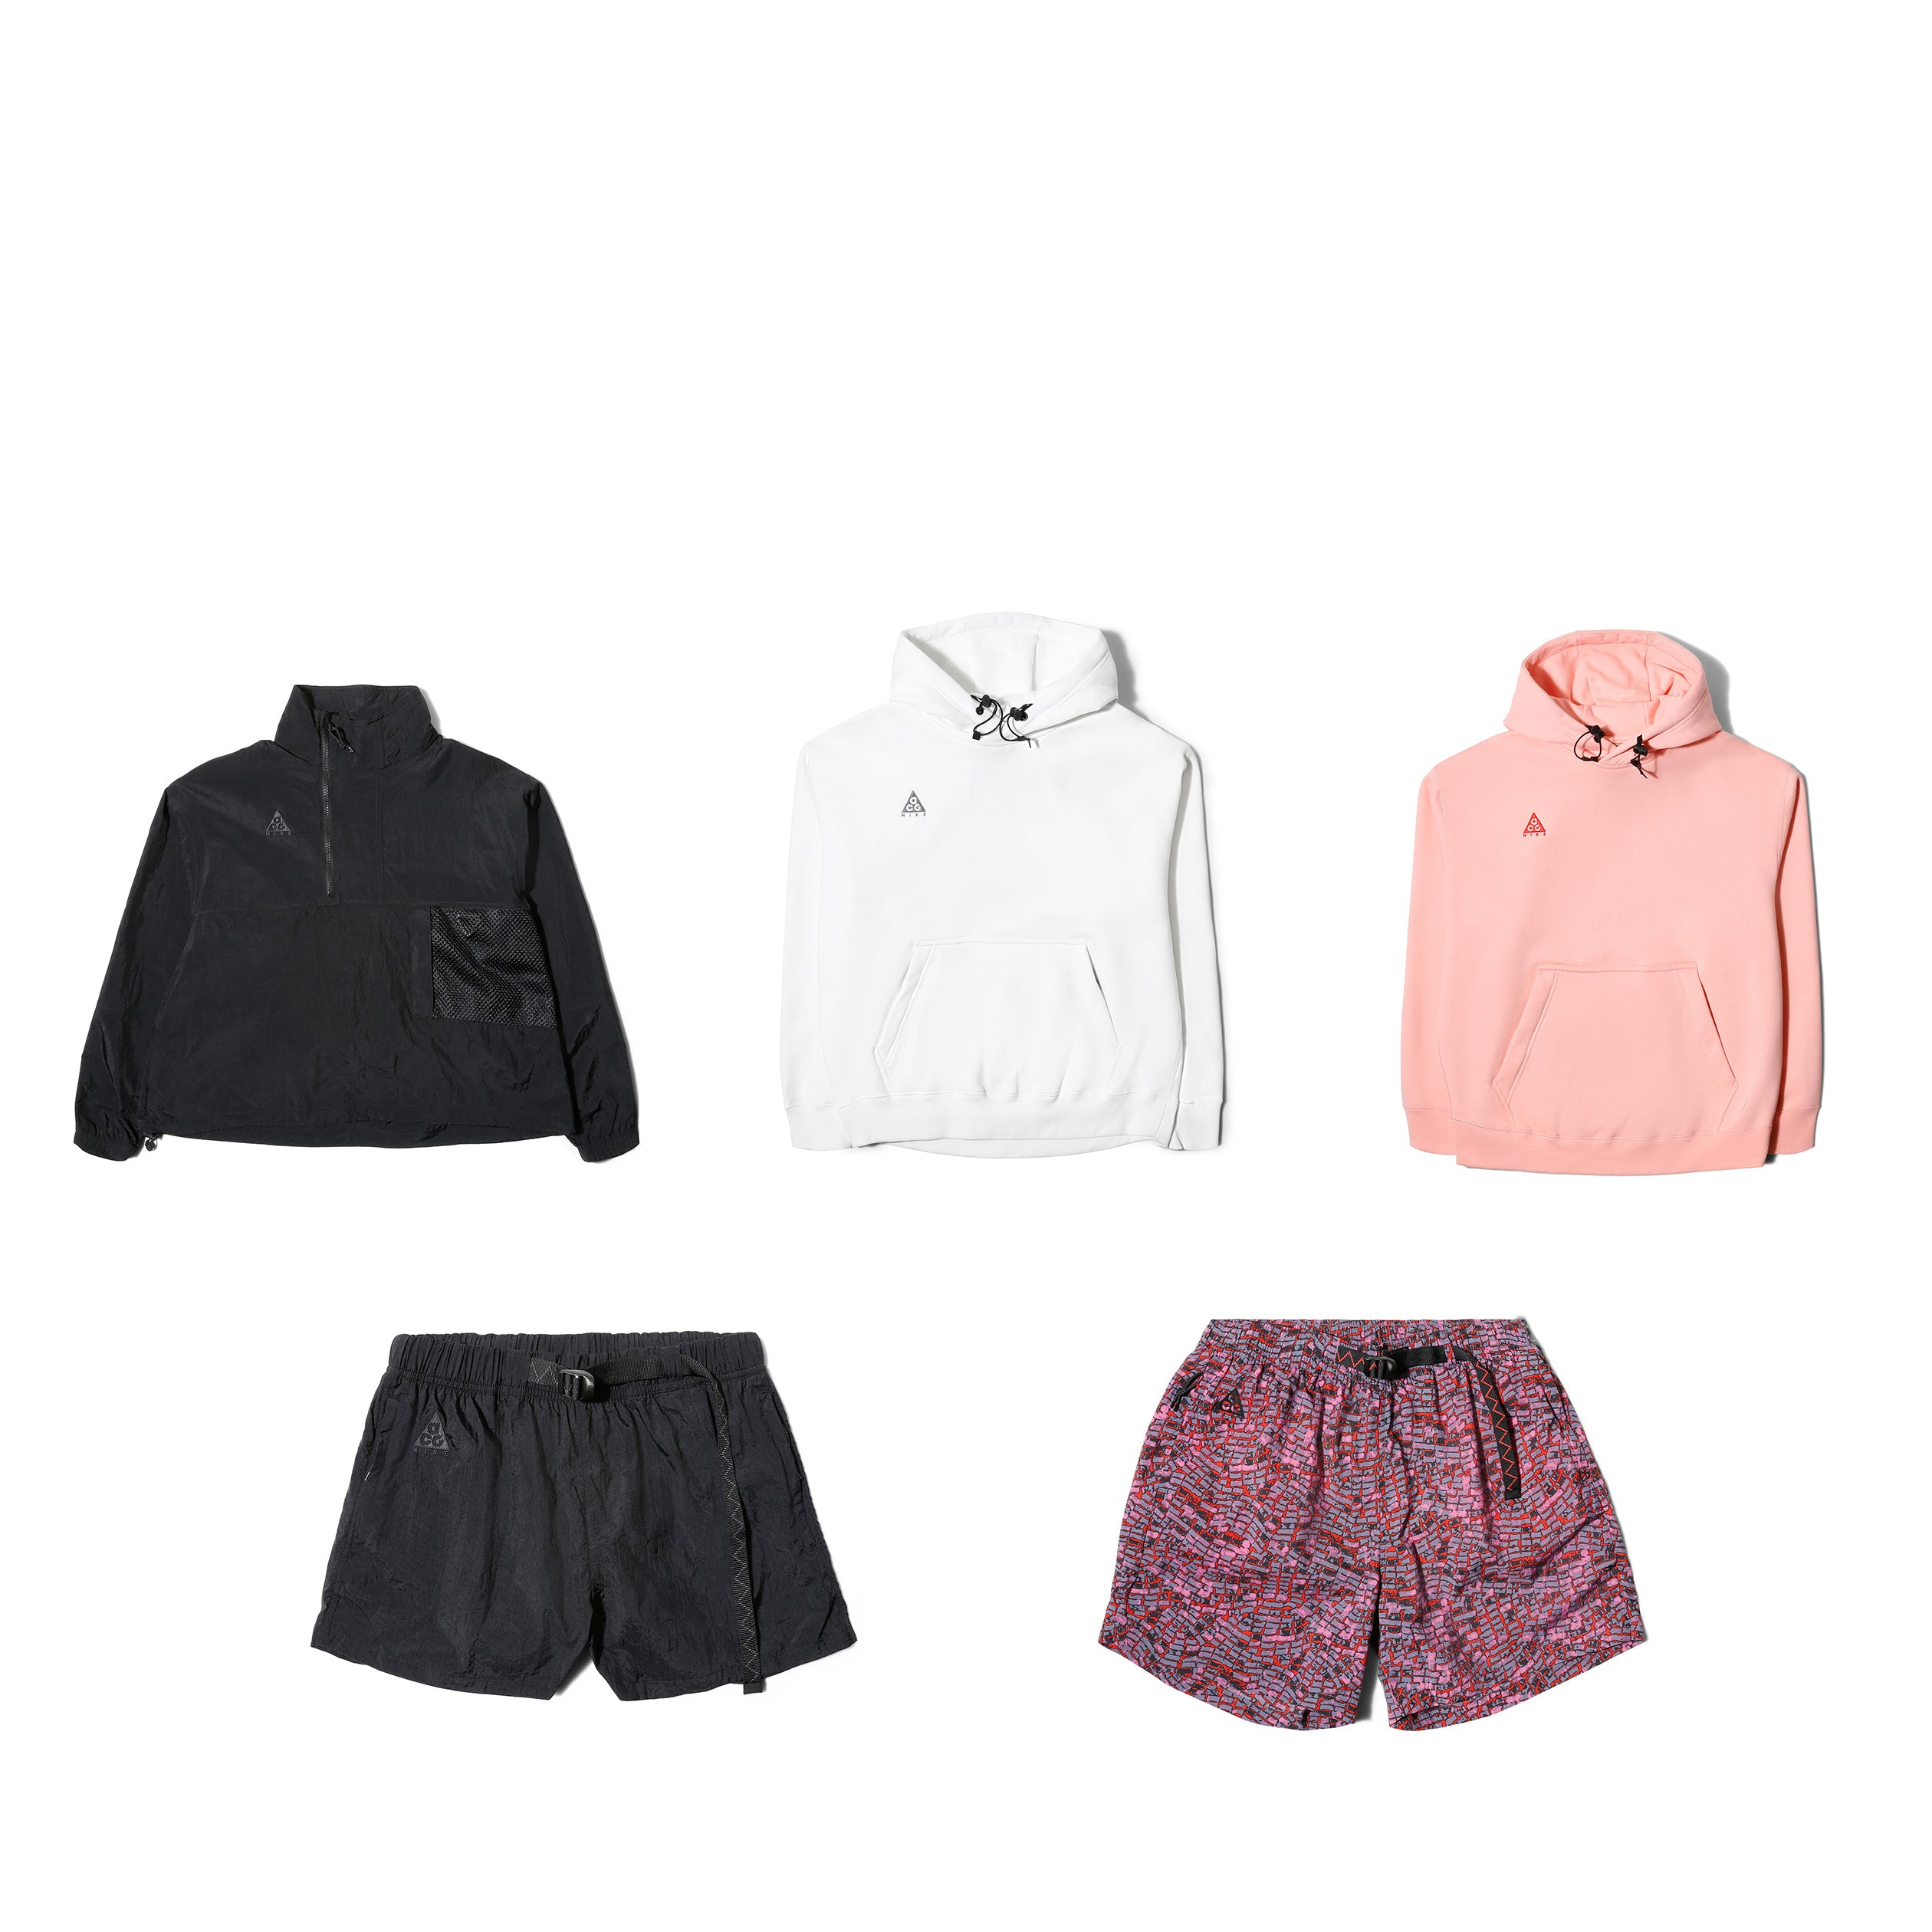 best sneakers 747f9 98824 Nike ACG Apparel  not all products offered are pictured  W NRG ACG ANORAK  BQ3615-010 -  120. M NRG ACG VEST BQ3619-010 -  120. M NRG ACG PO HOODIE ...